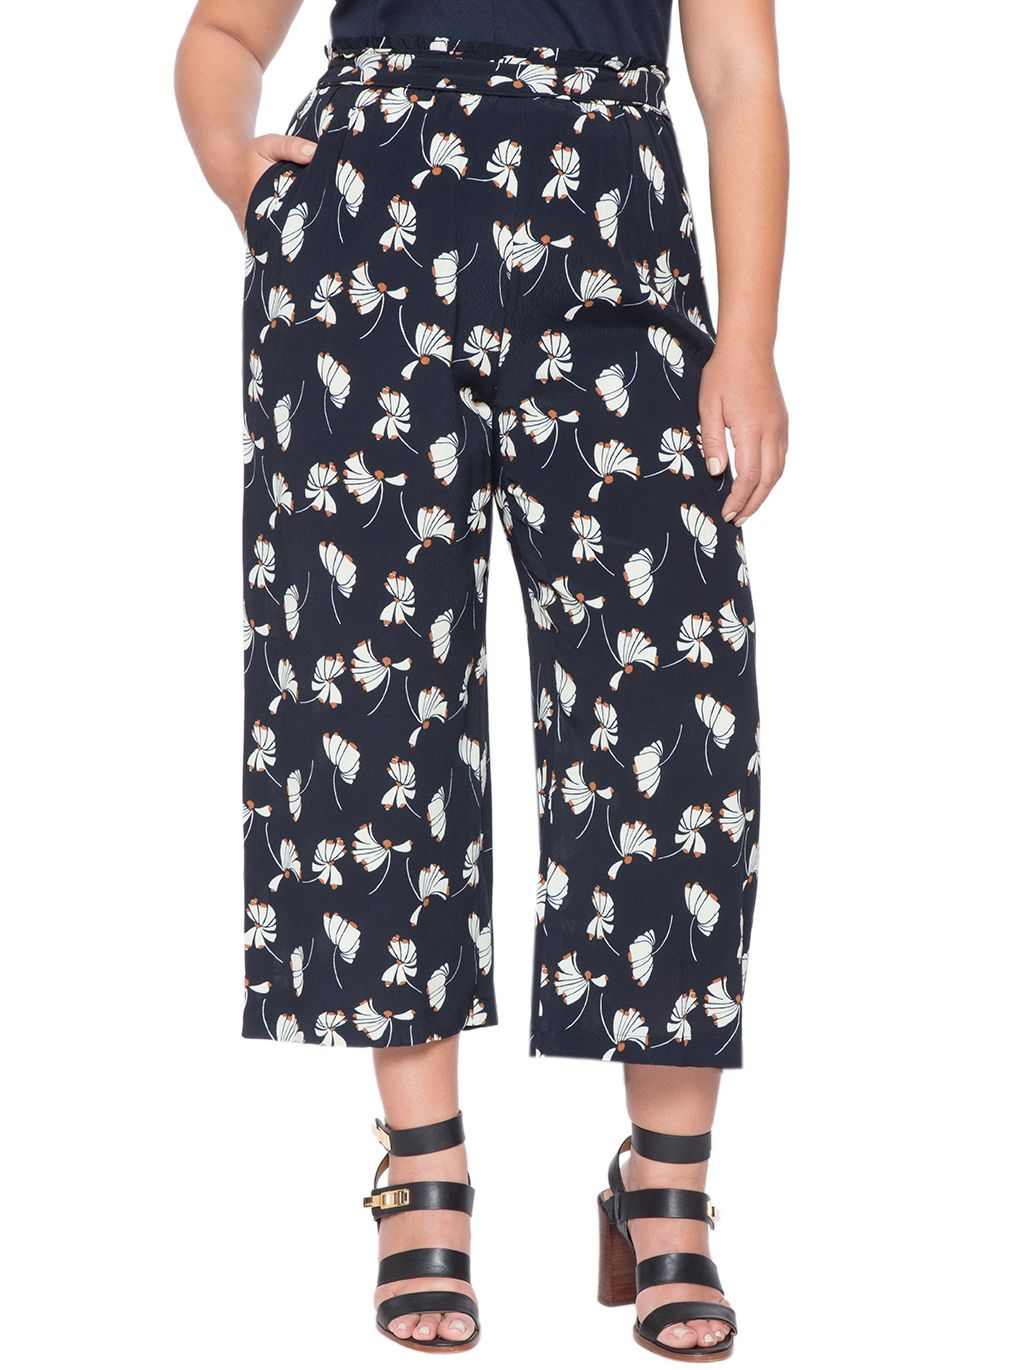 Printed Cropped Flare Pant | Women's Plus Size Tops | ELOQUII